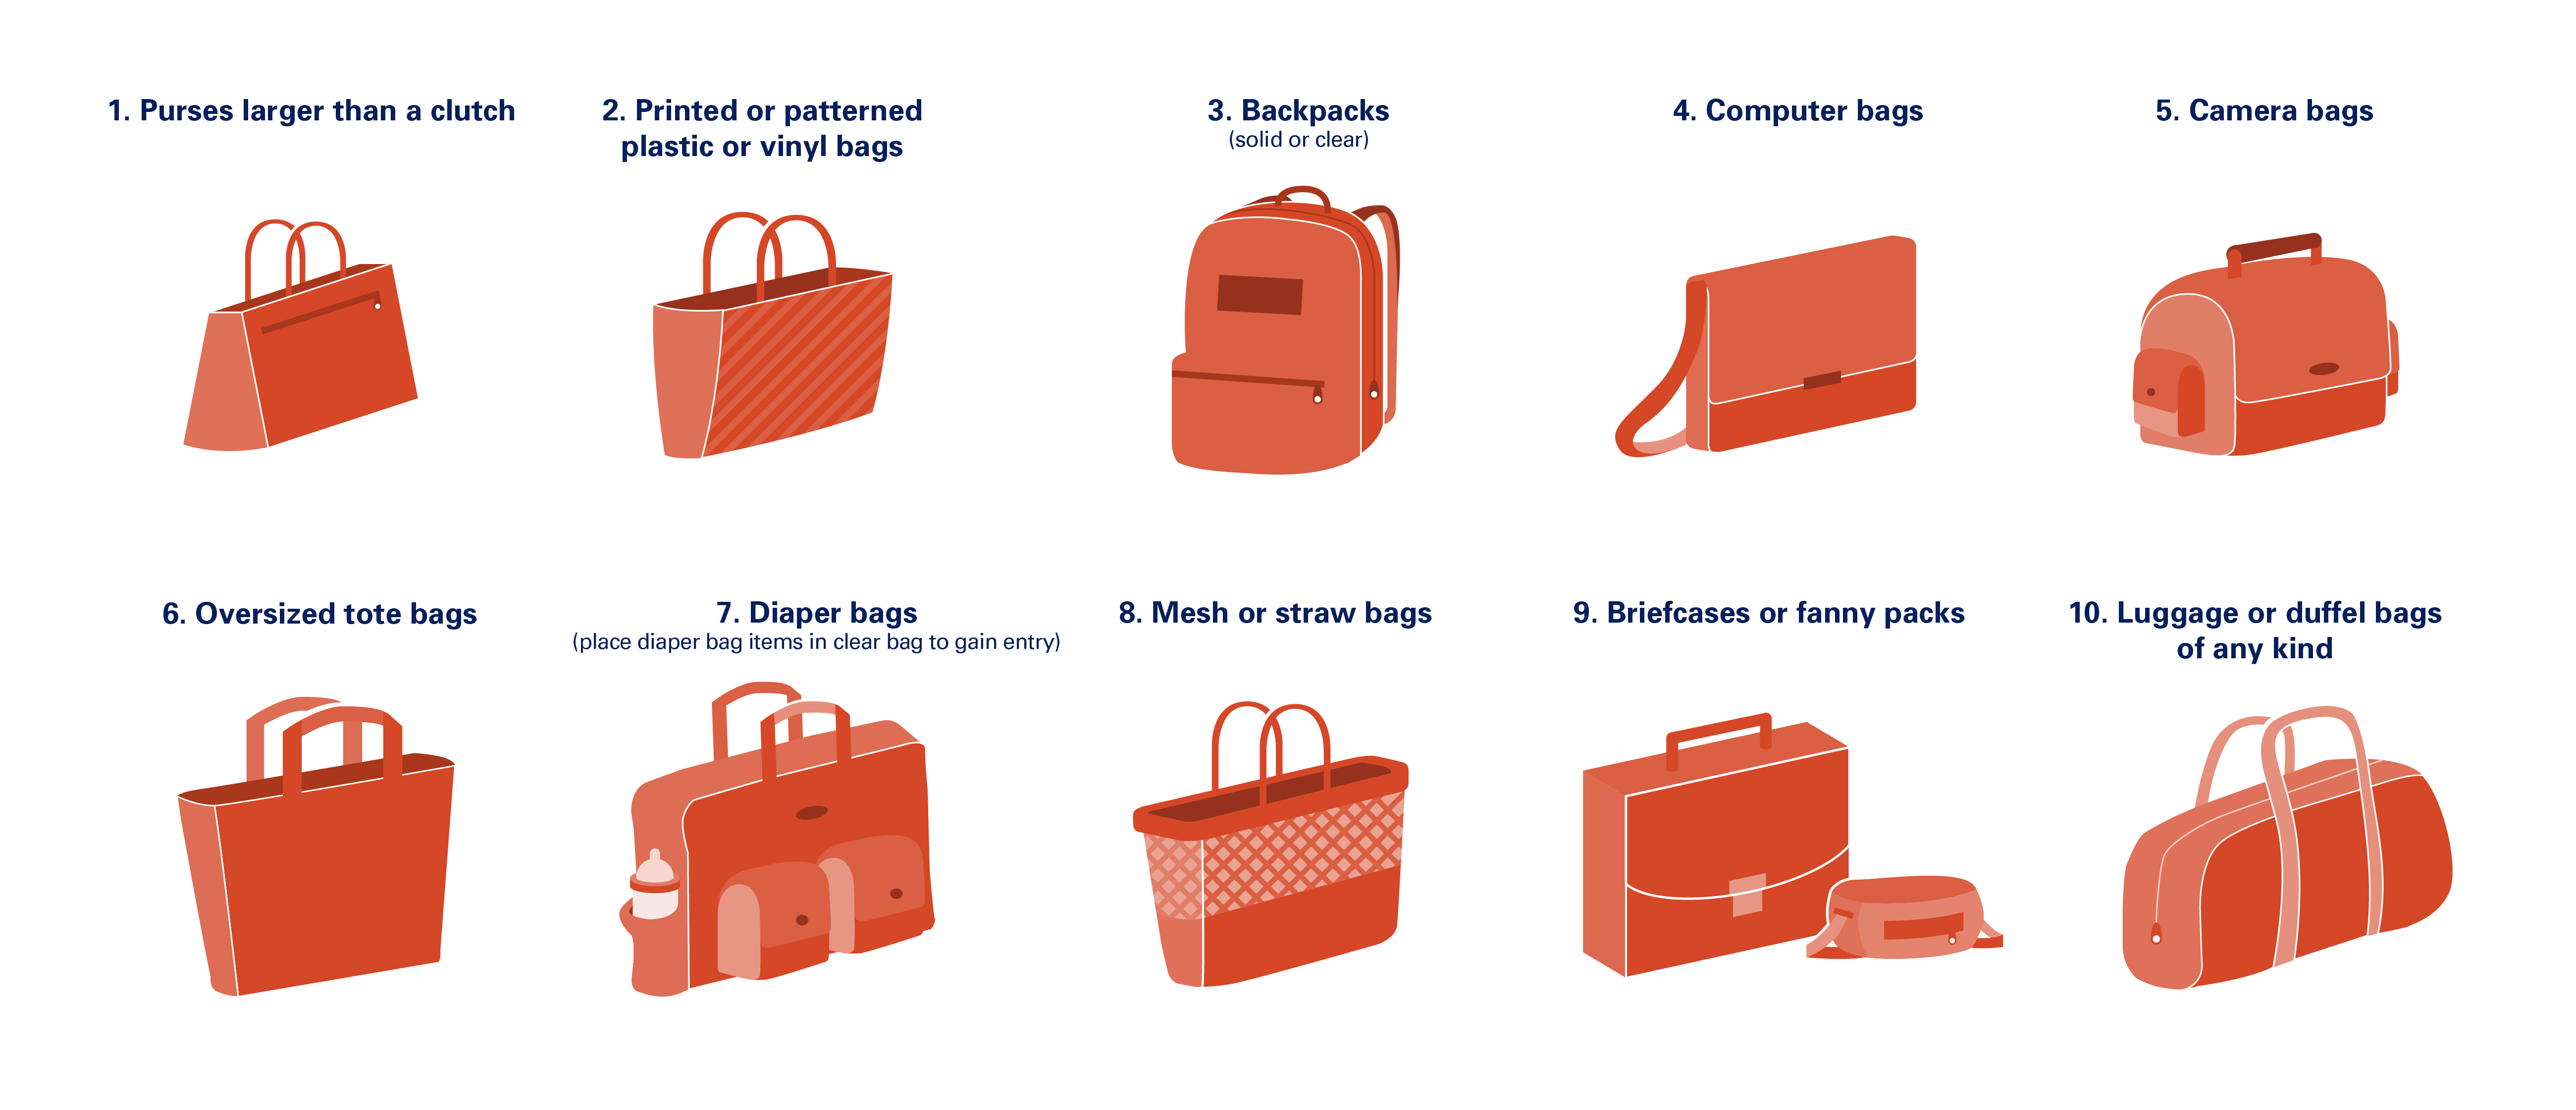 1. Purses larger than a clutch 2. Printed or patterned plastic or vinyl bags 3. Backpacks (solid or clear) 4. Computer bags 5. Camera bags 6. Oversized tote bags 7. Diaper bags (place diaper bag items in clear bag to gain entry) 8. Mesh or straw bags 9. Briefcases or fanny packs 10. Luggage or duffel bags of any kind